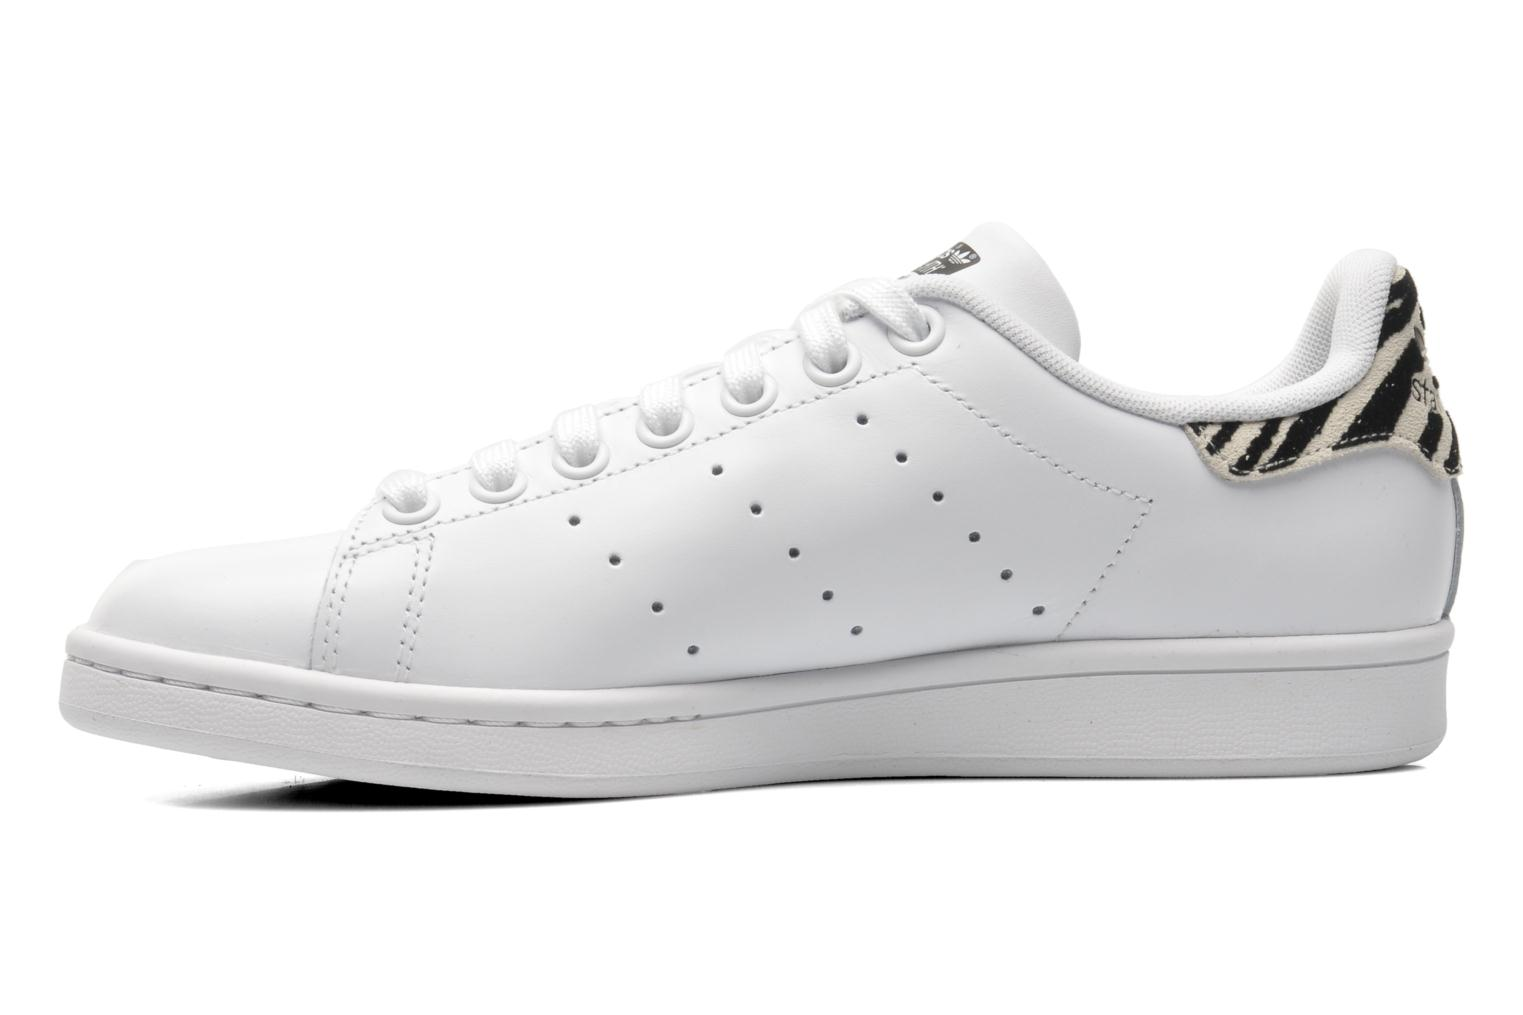 Stan Smith Zebre Pas Cher